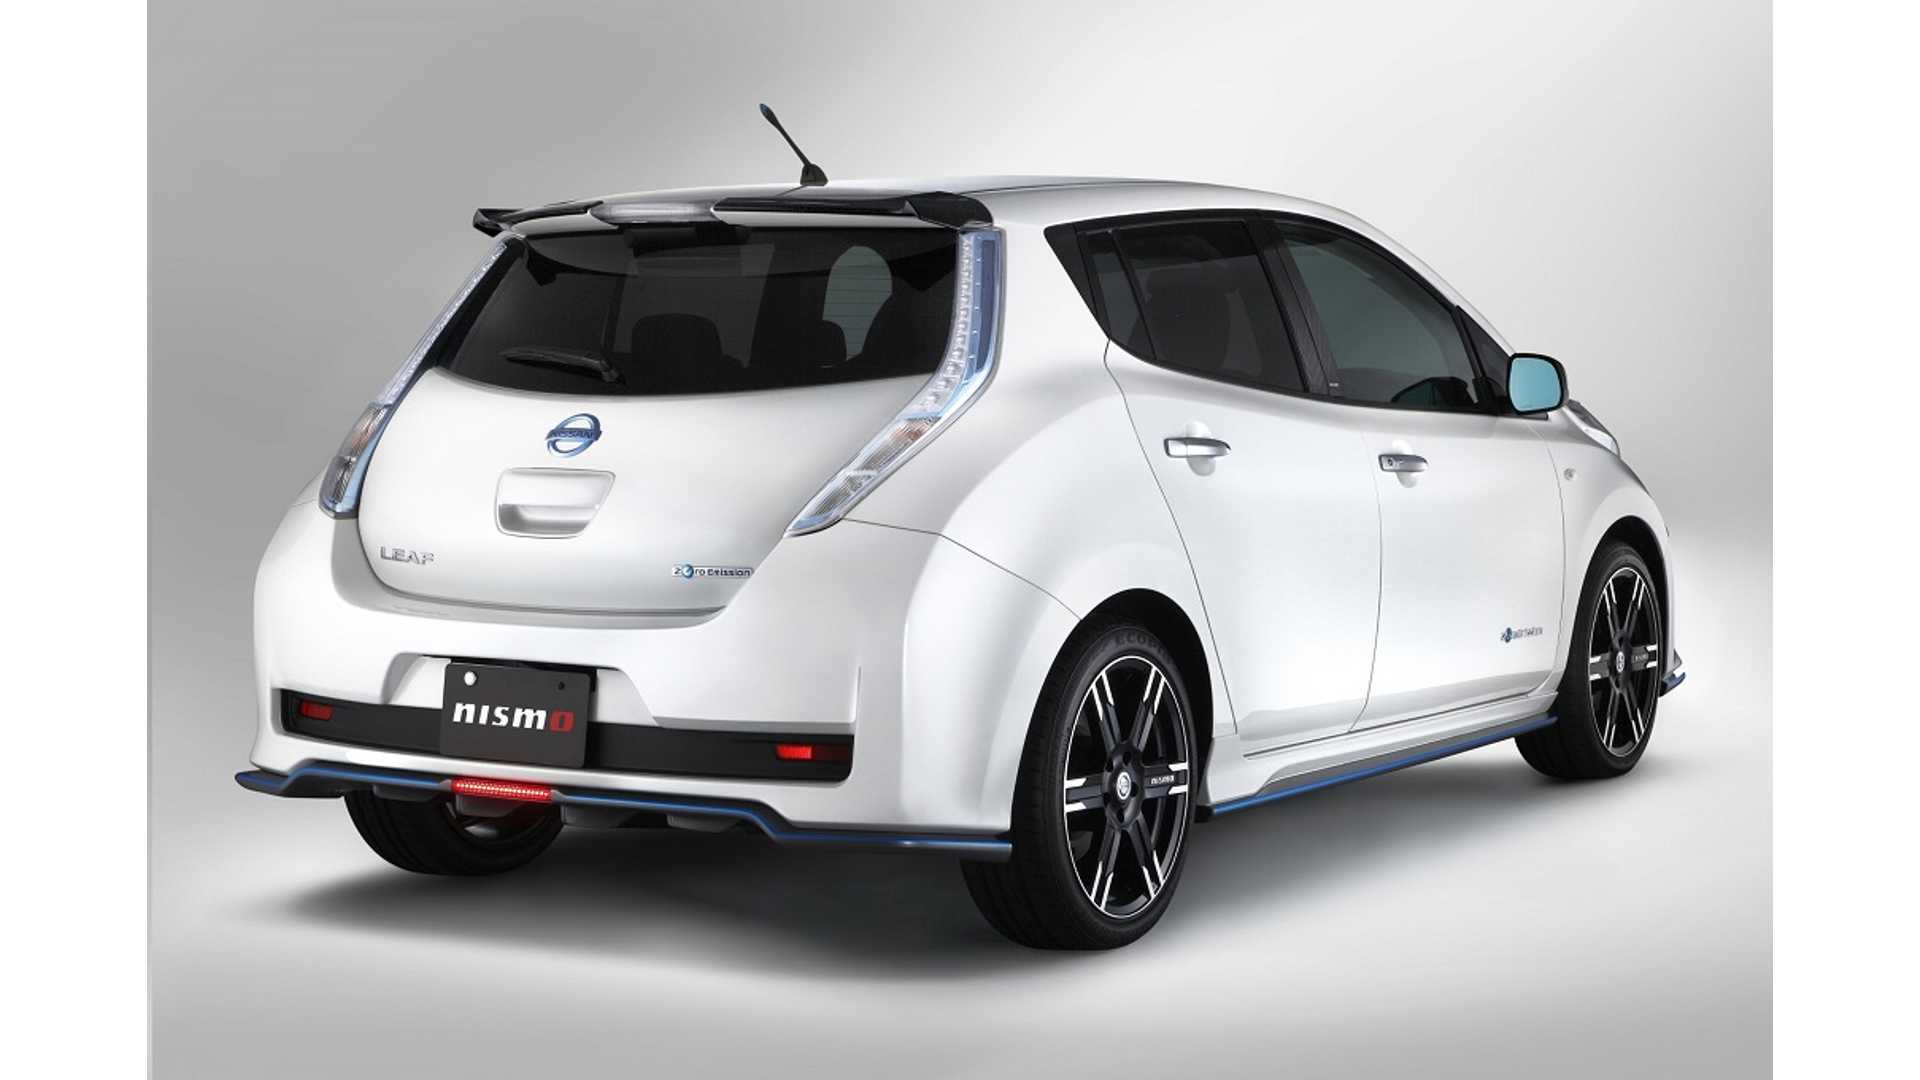 Nismo Your LEAF For About $10,000, Or Just Swap The VCM And Get More